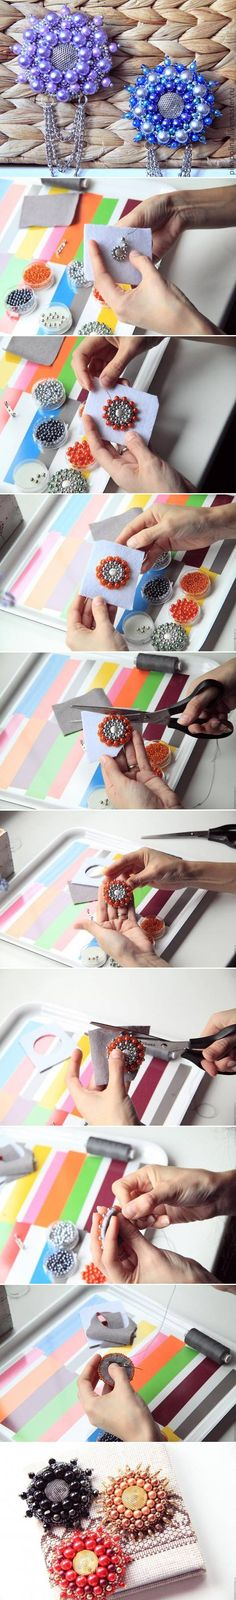 DIY Beads Flower Brooch DIY Beads Flower Brooch